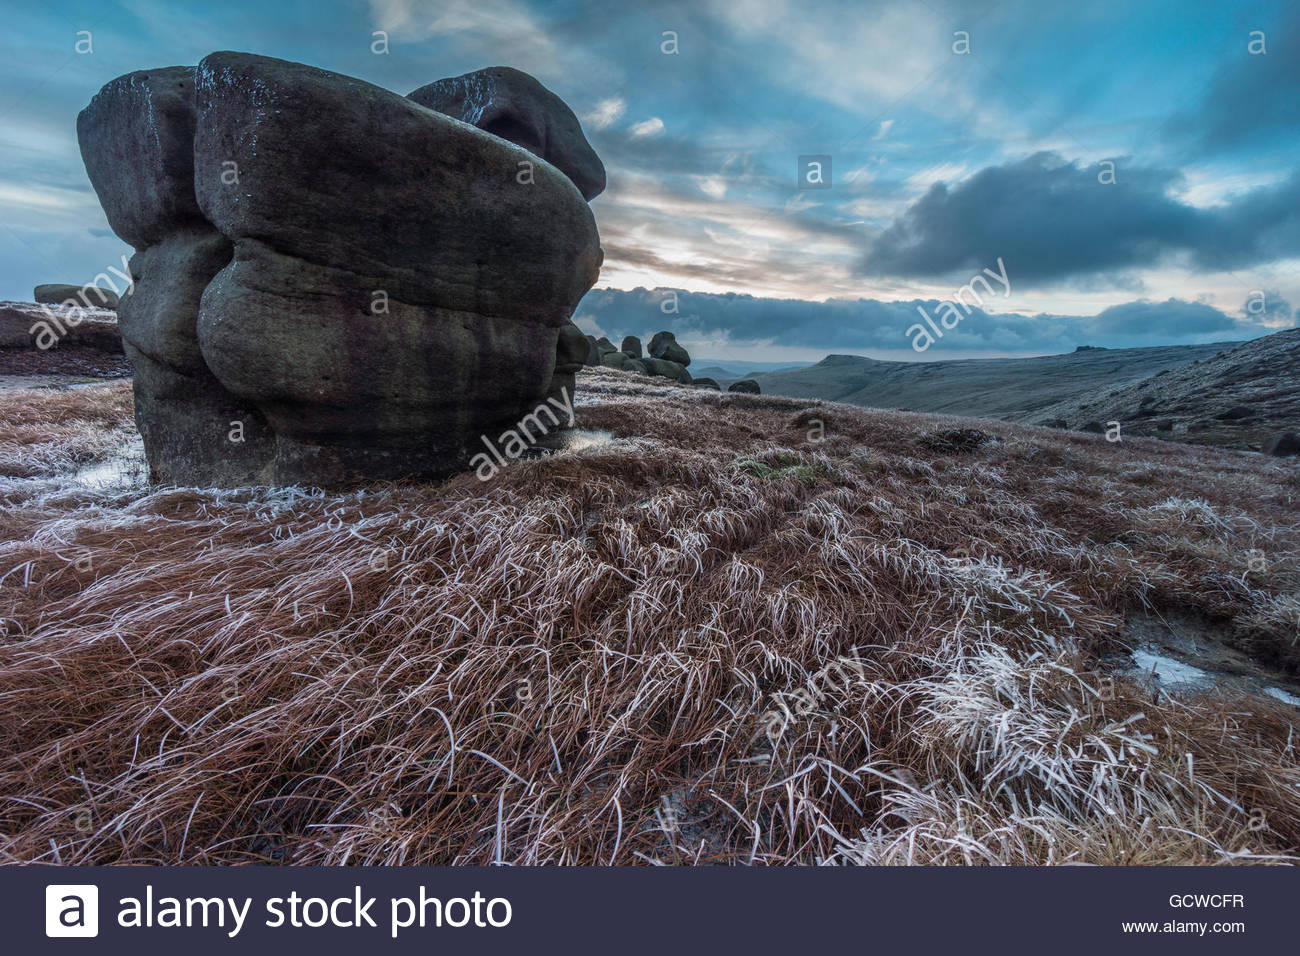 The Wool Packs in Winter - Stock Image